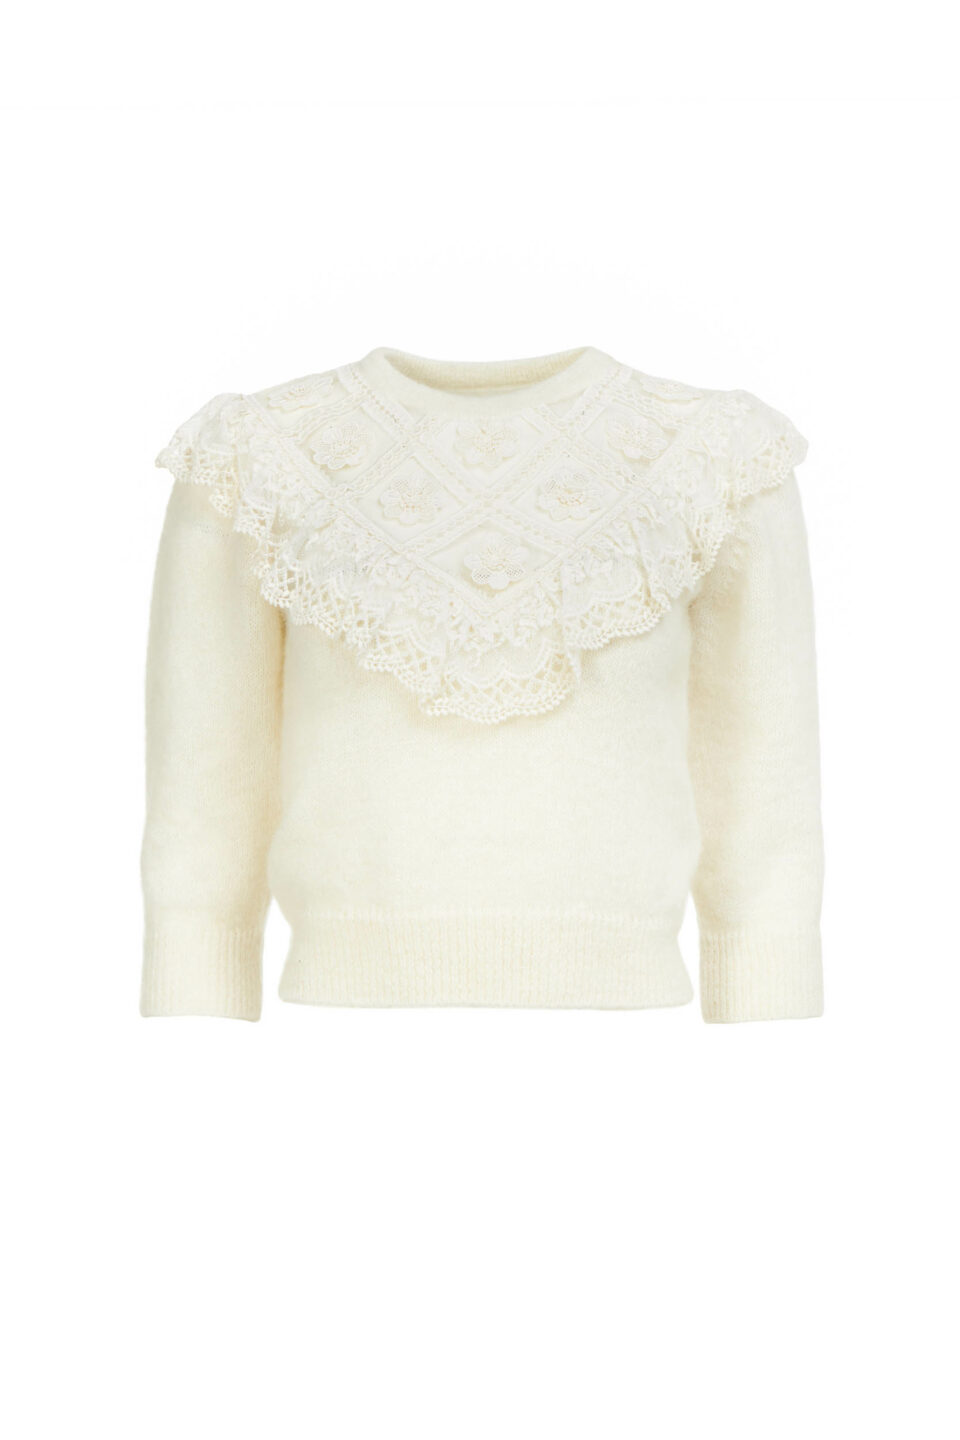 Julia PR2180 Sustainable Mohair Illusion-Neckline Knit Sweater with Embroidery & Ruffle Detail